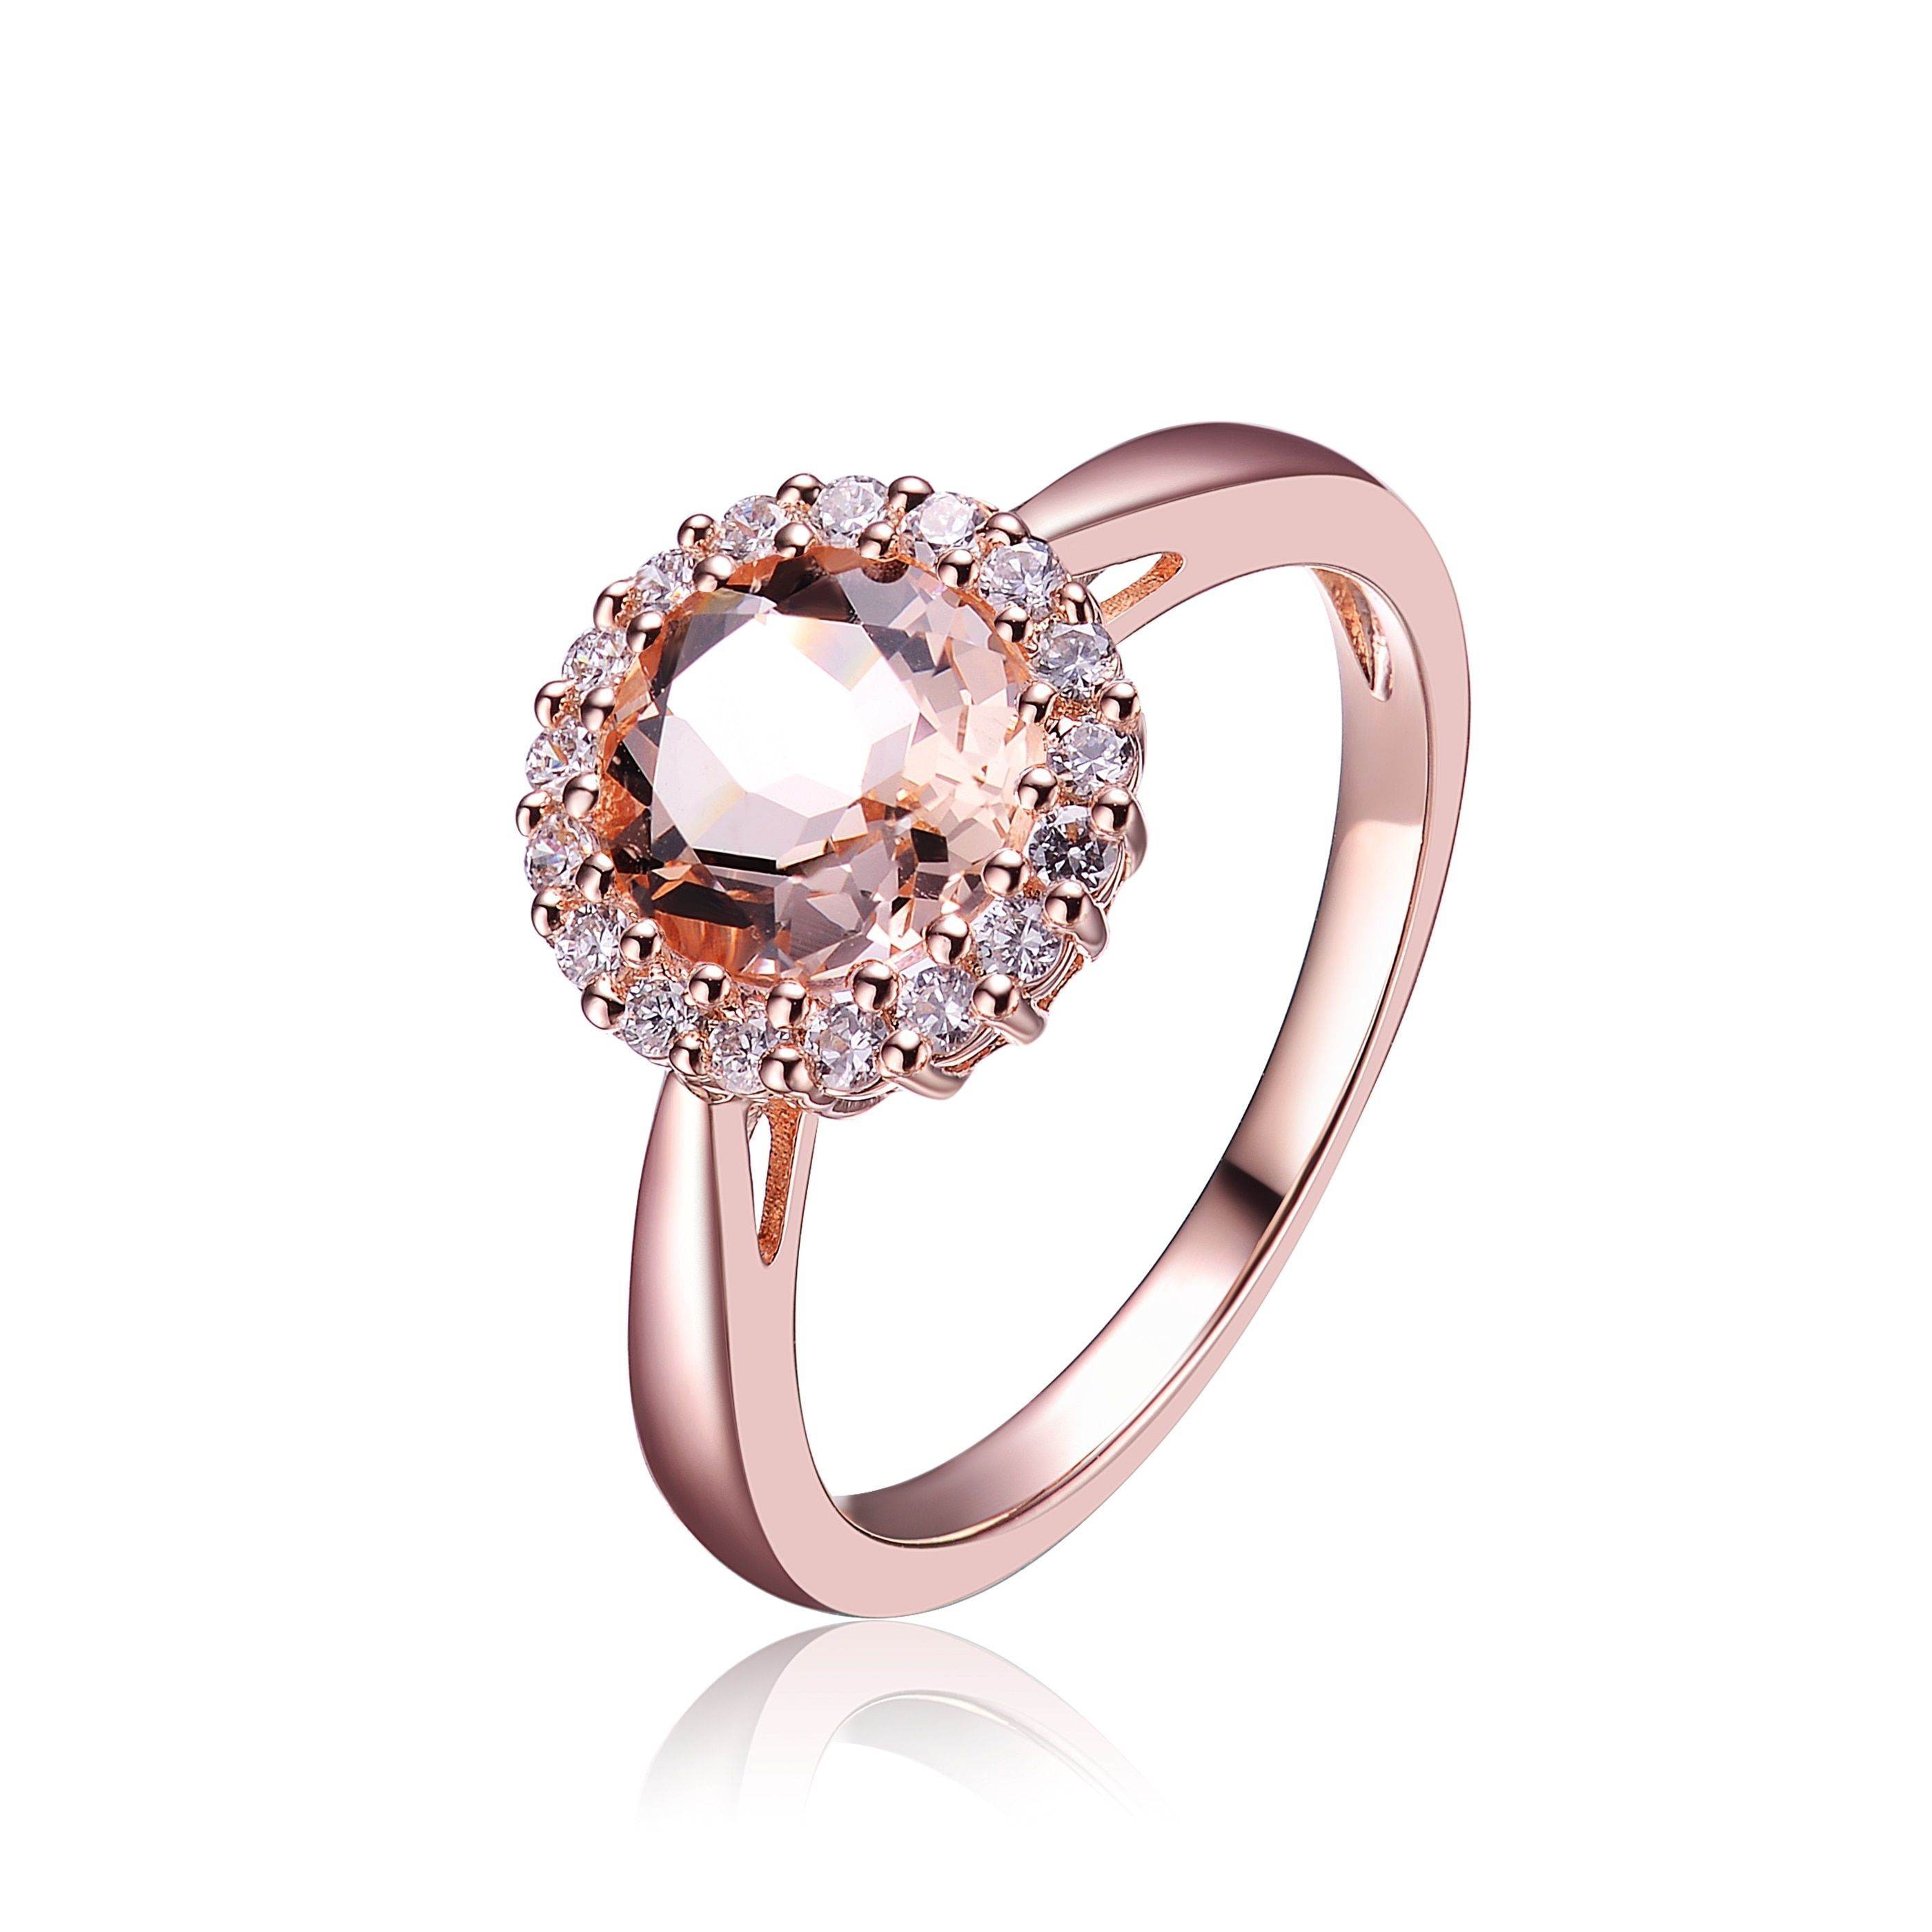 pin collette rings engagement plating sterling zirconia cubic rose amber white clear z silver ring